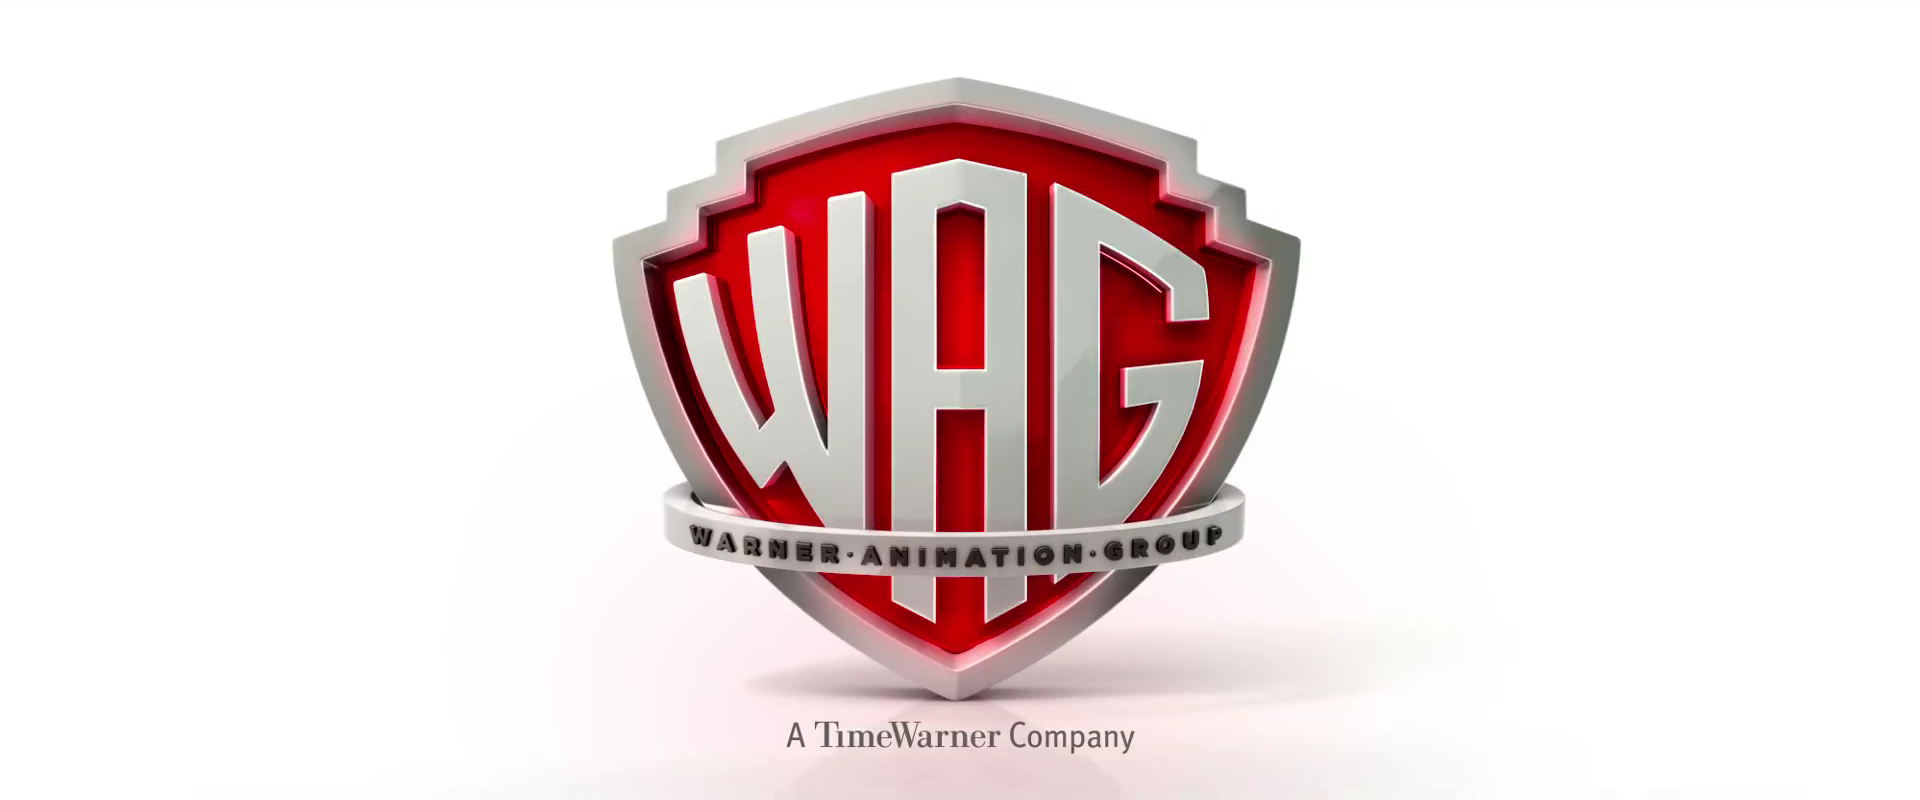 Image - Warner animation group logo 2016.png | Logopedia | FANDOM powered  by Wikia - PNG Wag